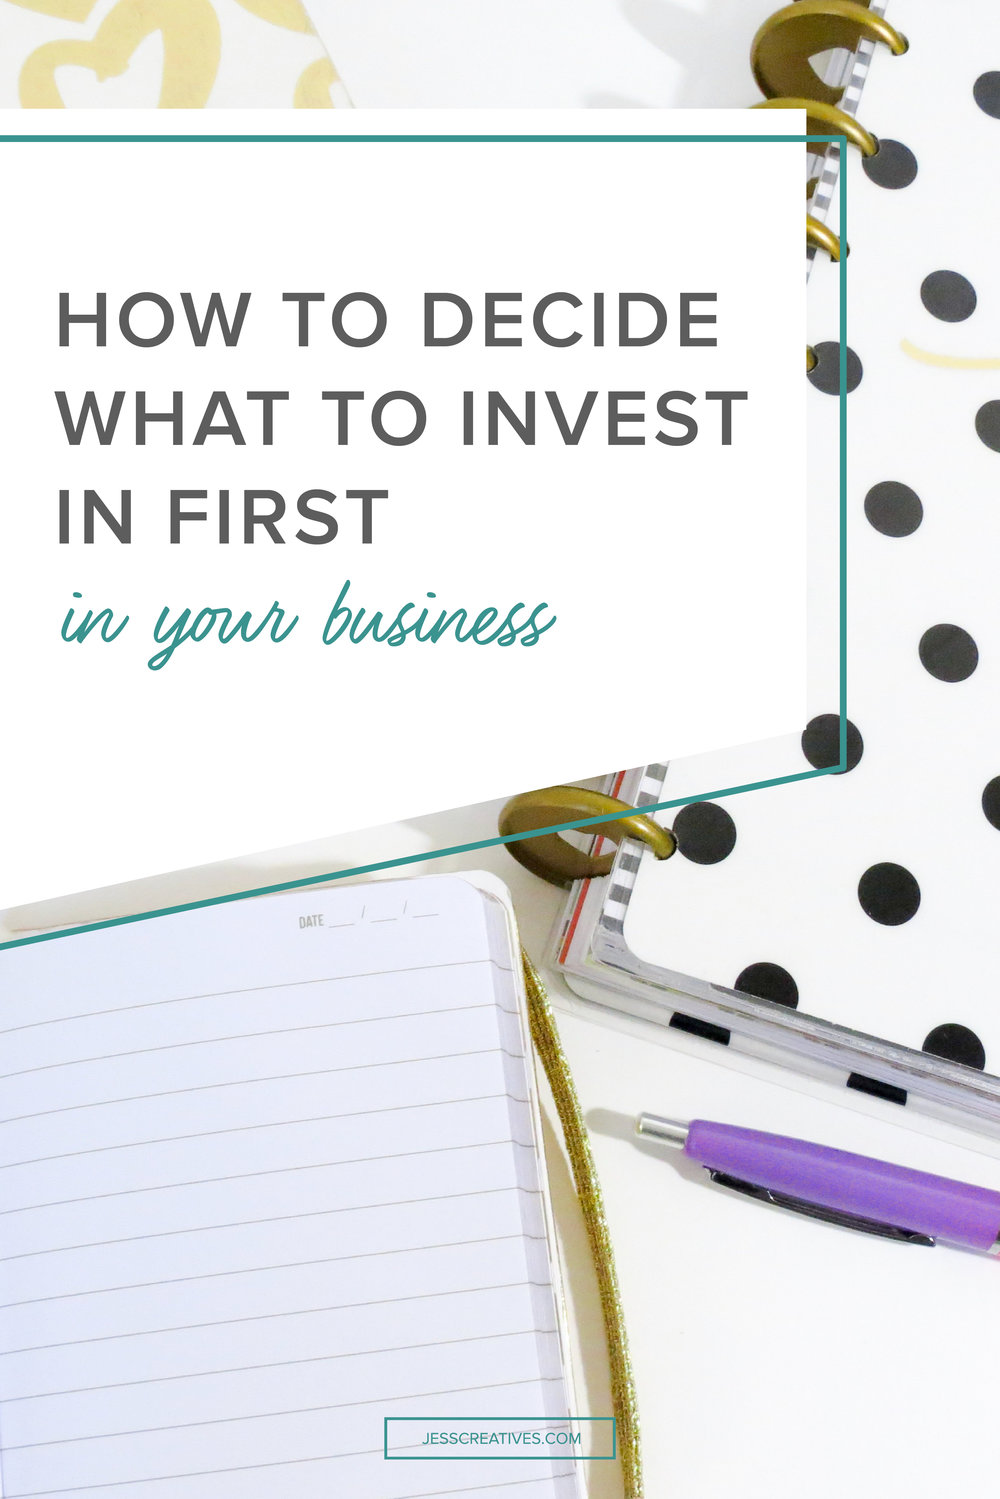 In this post, I'll talk about three great investments you can make for your business. But the point here is help you understand the right time to make each investment so that you don't have to stress about where to spend money as you grow.